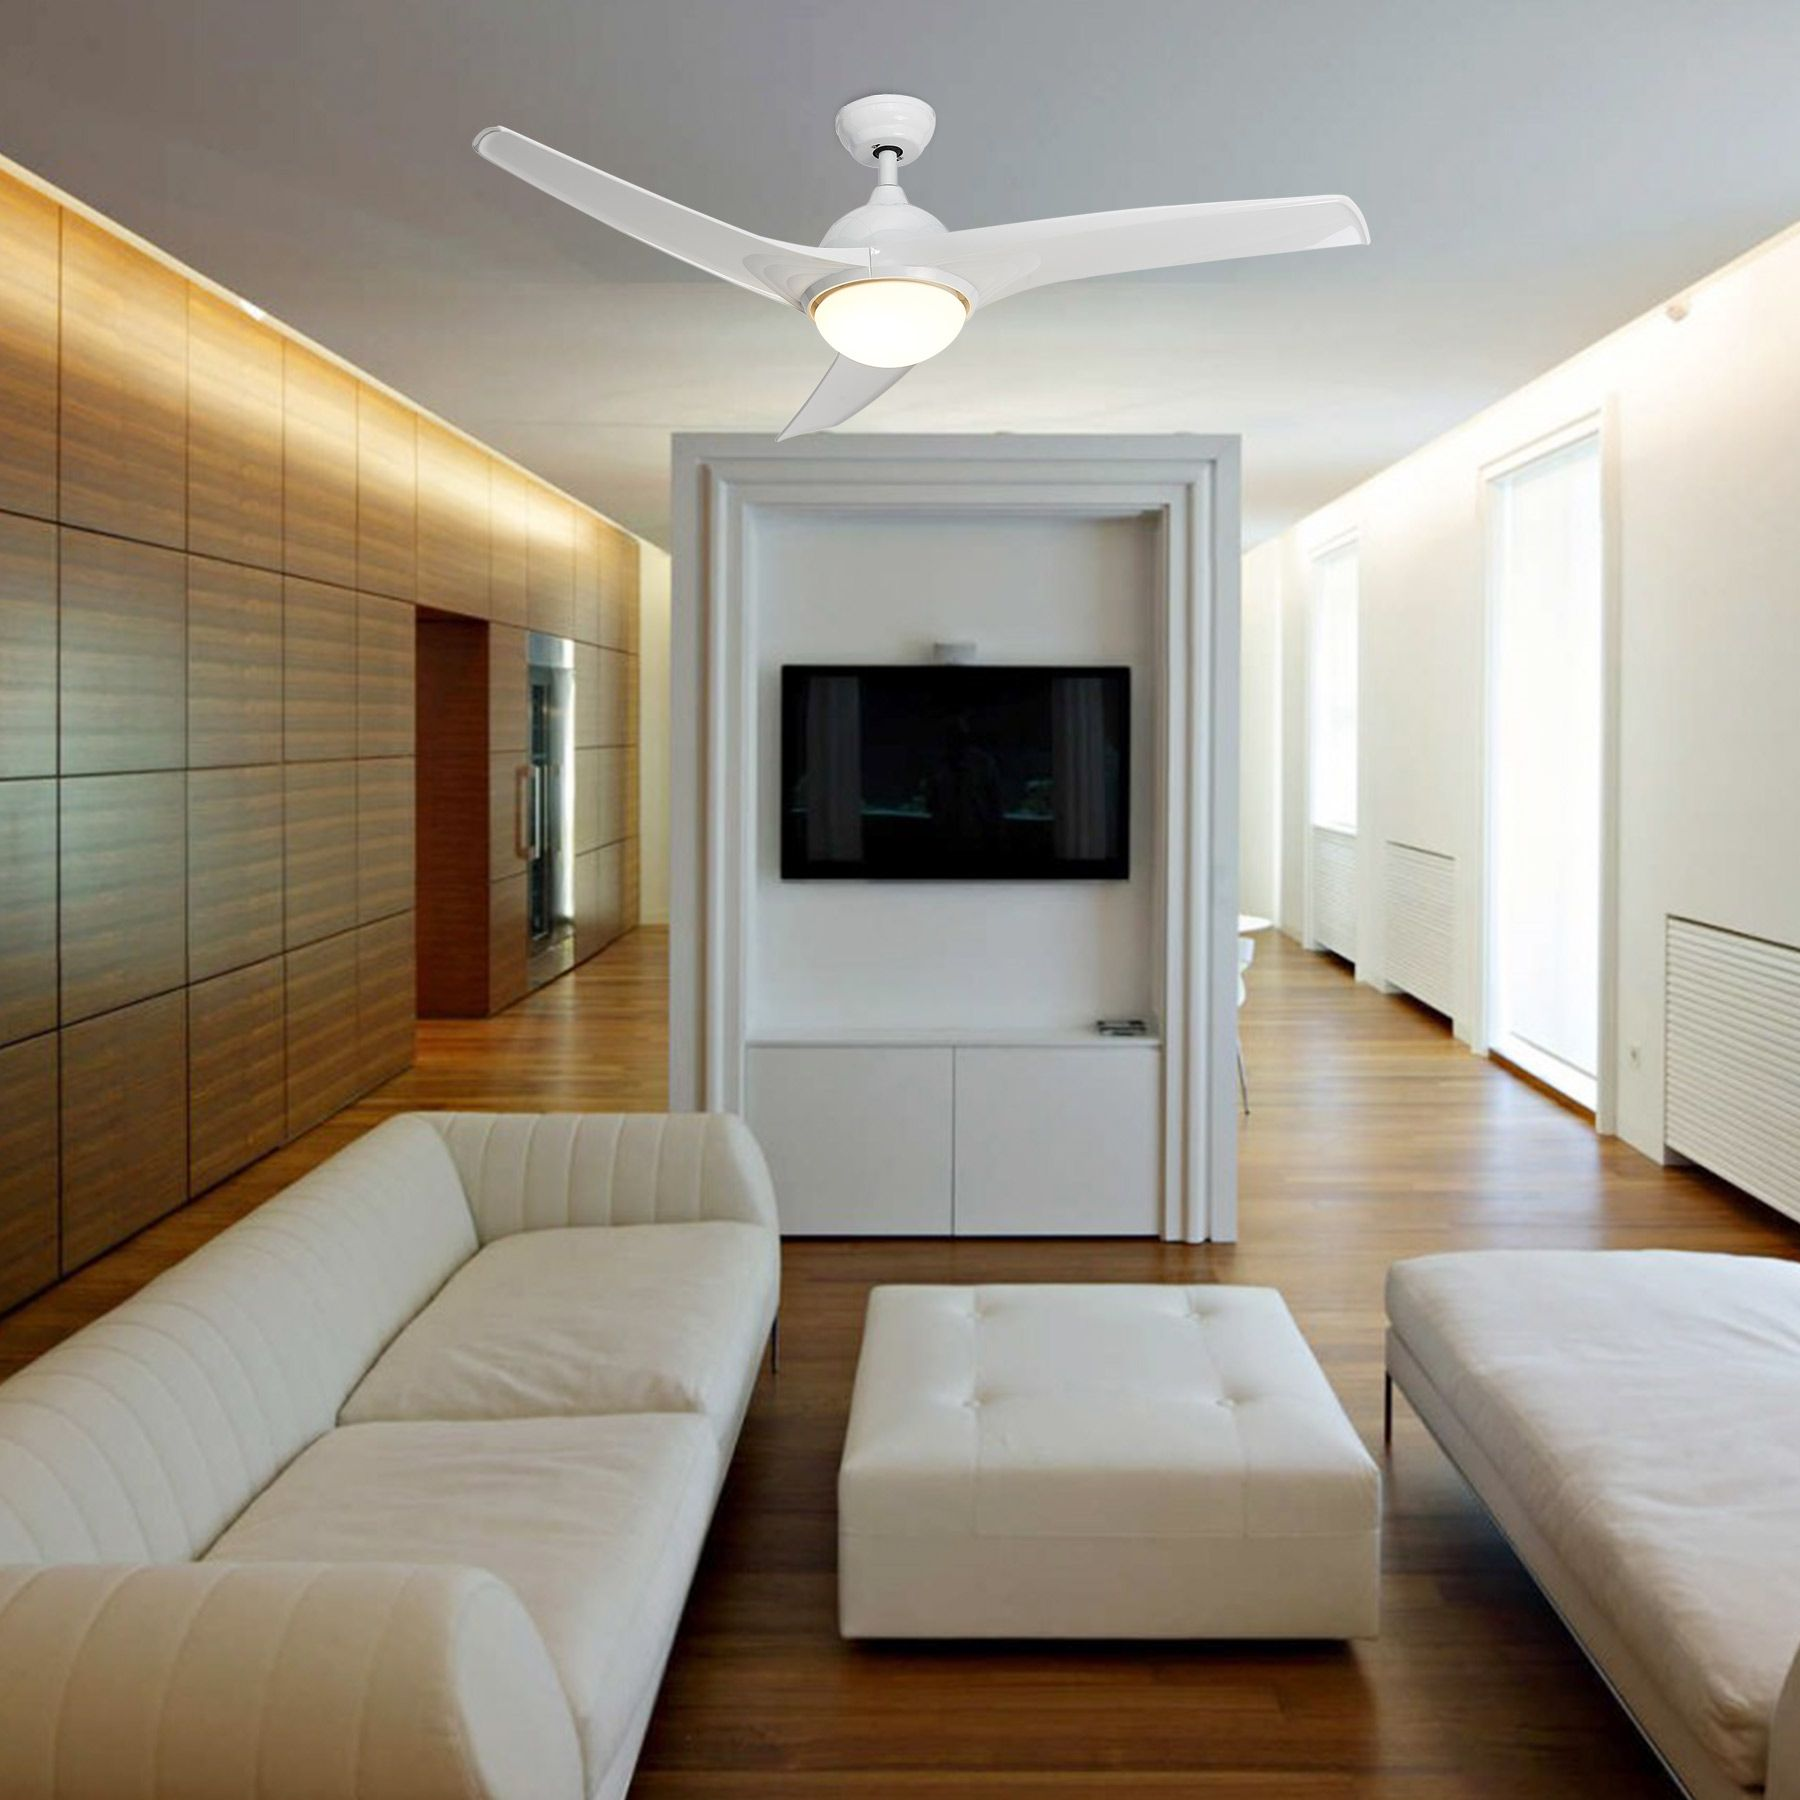 Home In 2020 Contemporary Ceiling Fans Led Panel Light Ceiling Fan